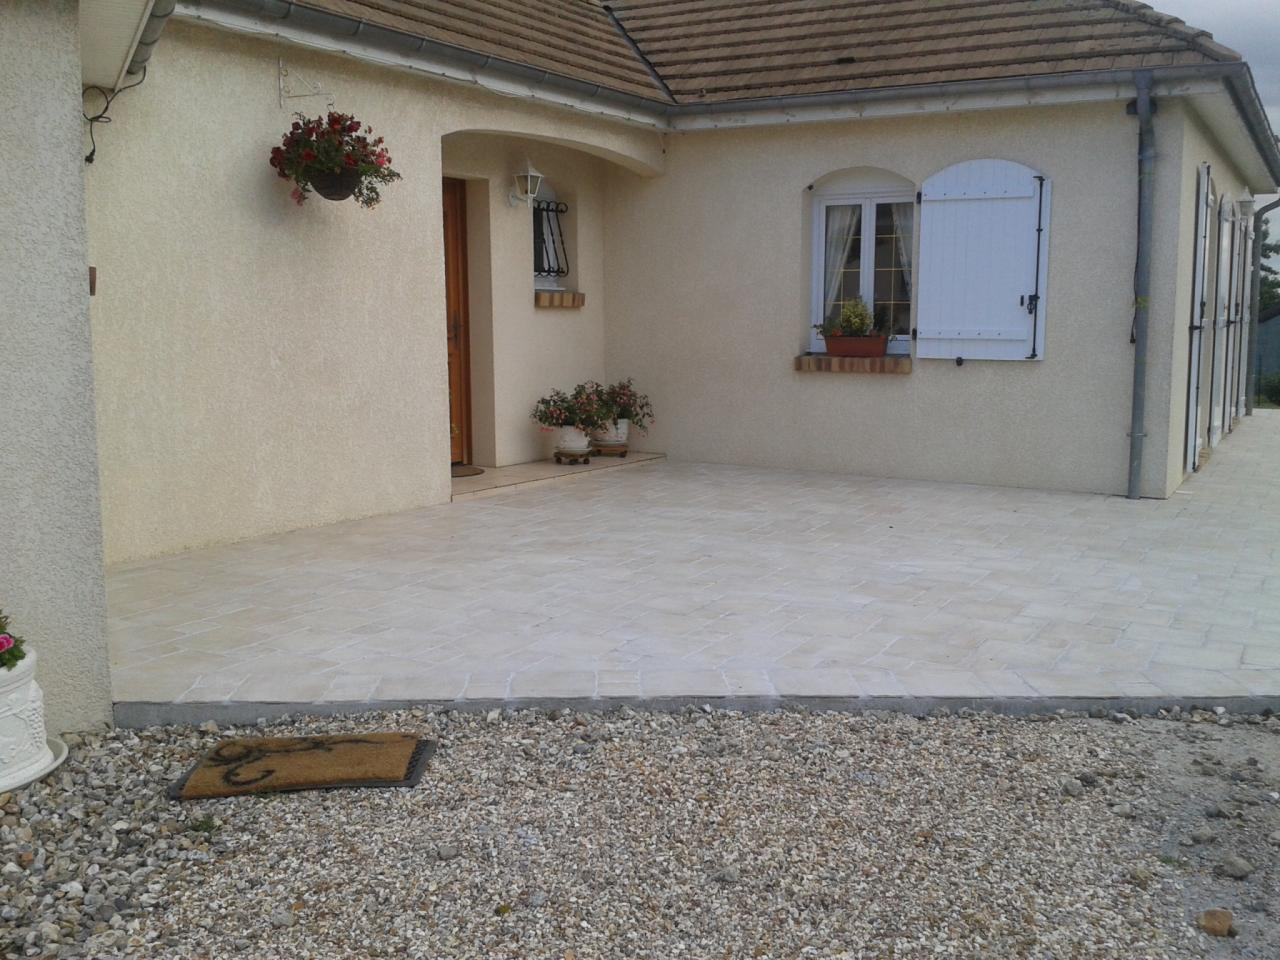 Carrelage ext rieur terrasse all e et trottoir for Pose de carrelage sur terrasse